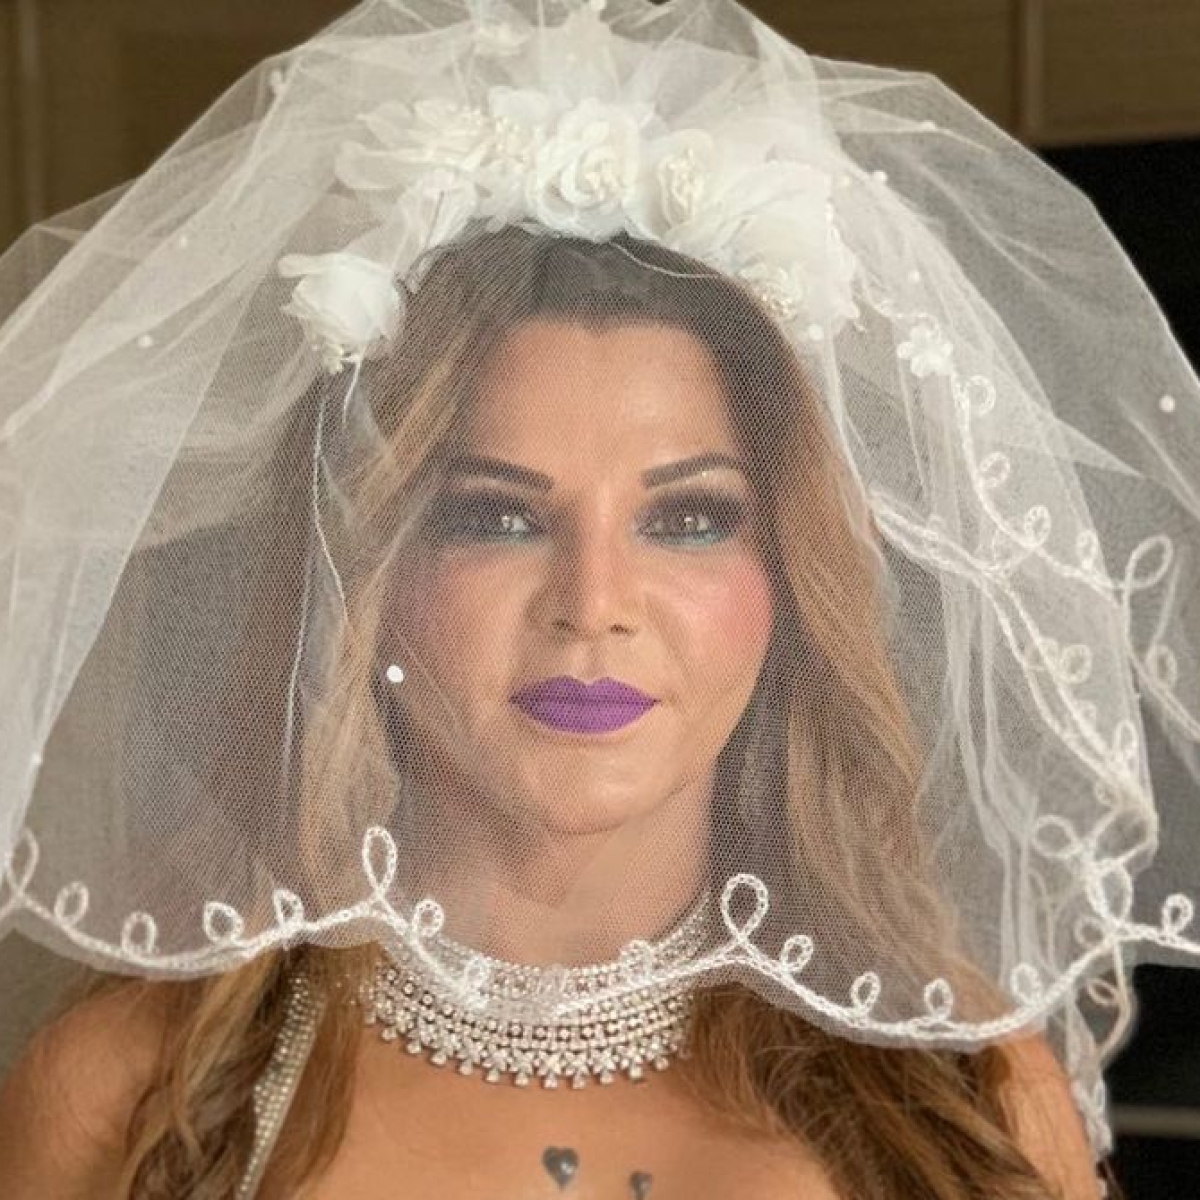 'Not doing this for publicity': 'BB14' challenger Rakhi Sawant reveals if her marriage is 'real or fake'